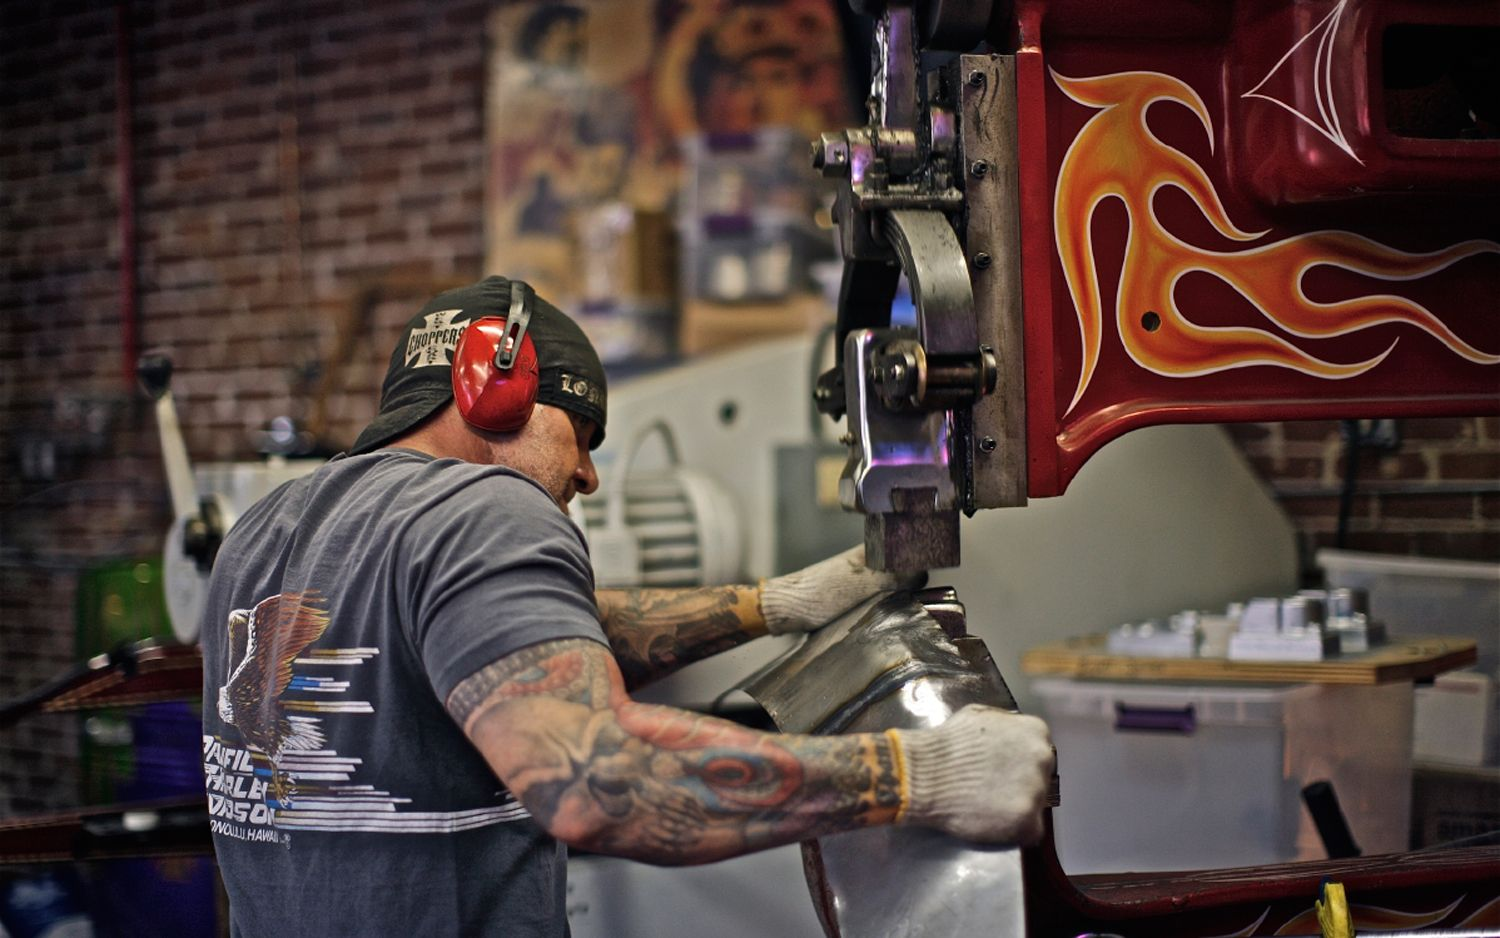 Metalfab All That Glitters Is Metal moreover VIblsVqY80c together with Jesse James Copper Chopper in addition K7mTs4zTZN0 in addition Welding Is A Lifestyle. on jesse james metal fabrication